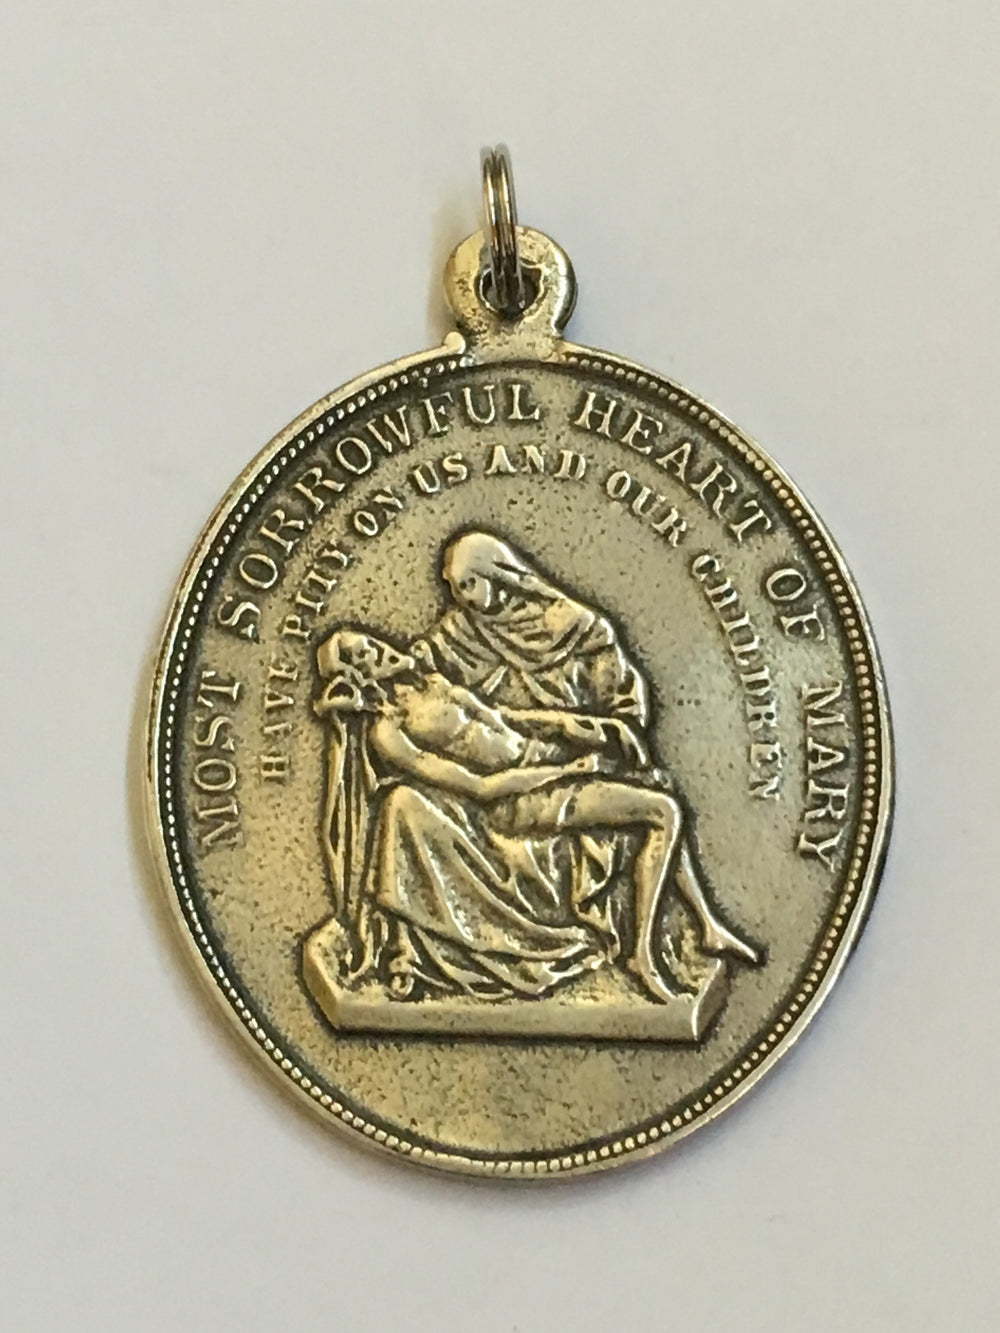 St. Joseph Powerful Intercessor Medal, Pieta (back)